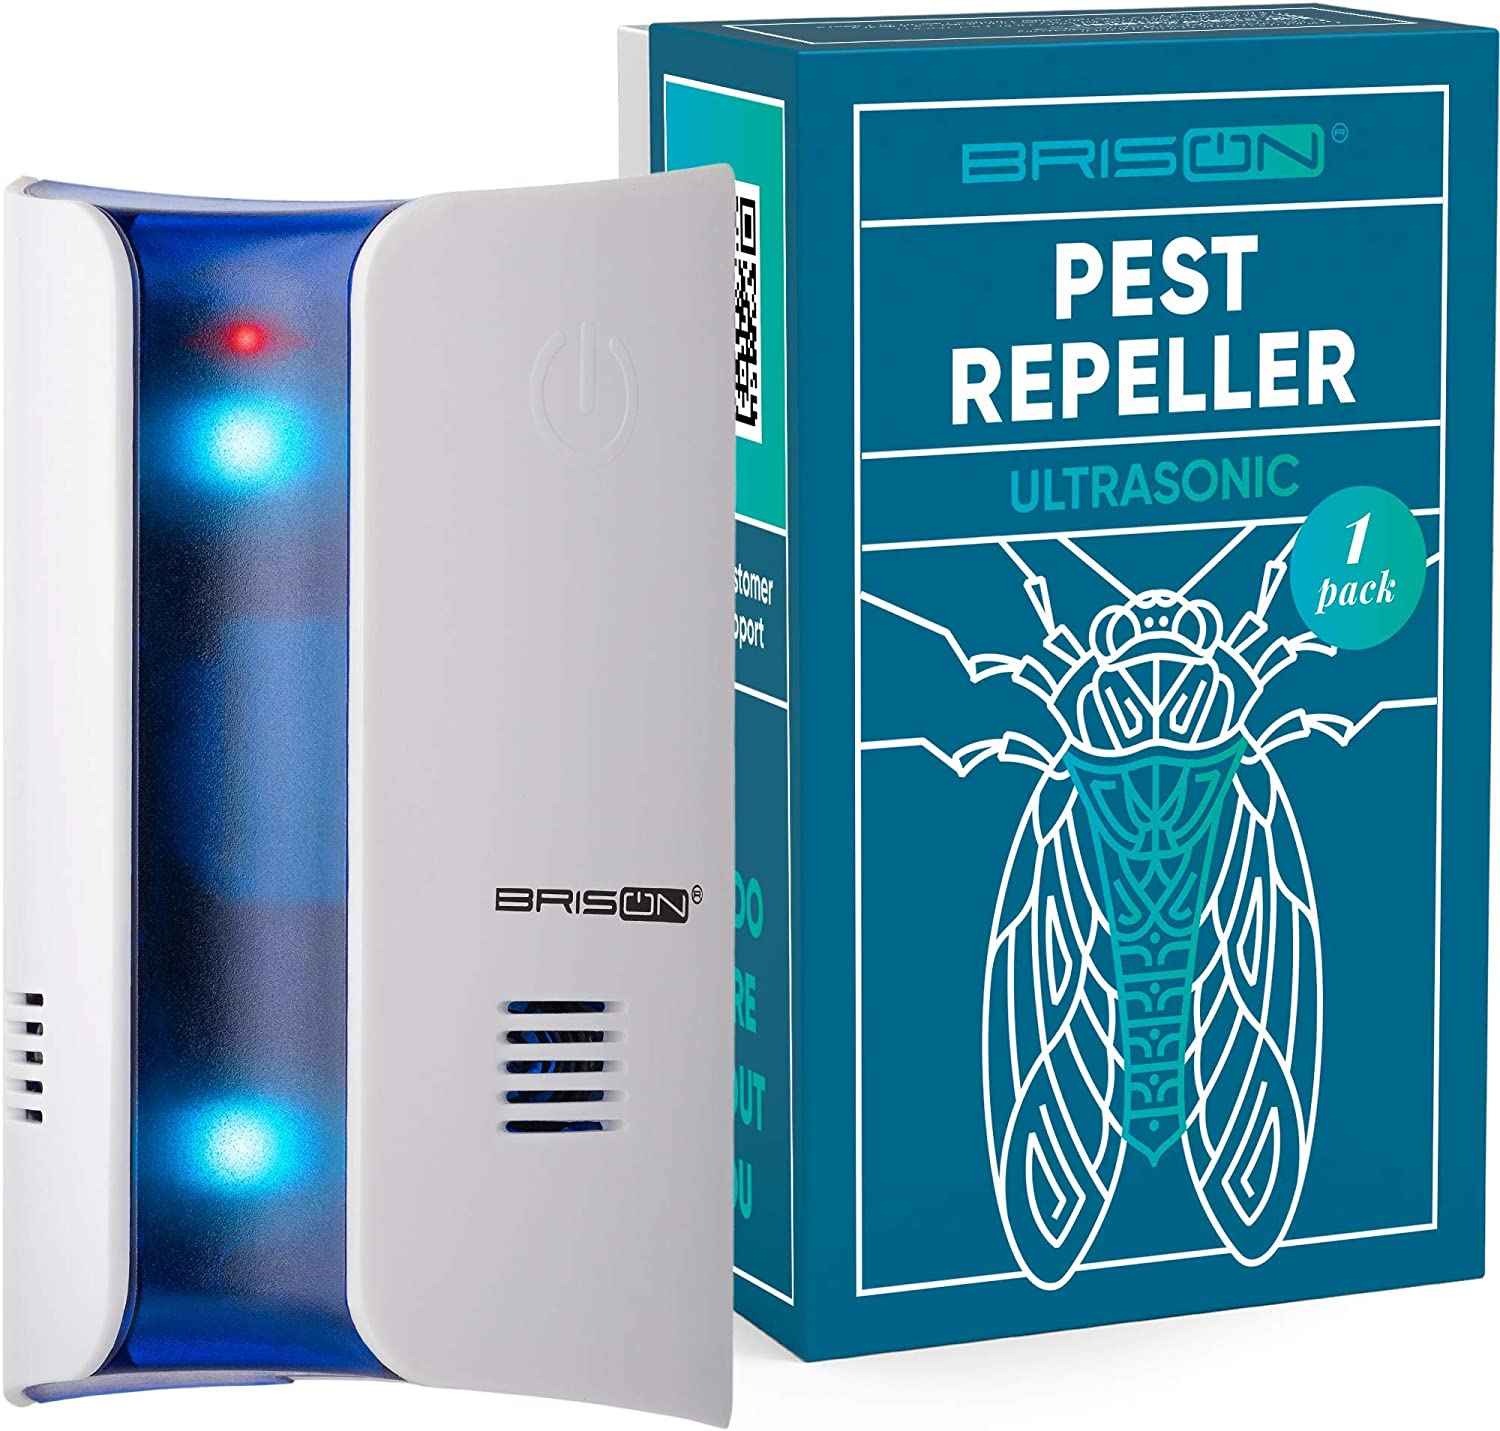 1 PACK Ultrasonic Mosquito Repellent -Wall Plug-in Electromagnetic Pest Repeller Prevents & Drives Away Mice Rats Spiders Fruit Flies Fleas Roaches Ants Snakes Rodents - Eco-Friendly & Pet Safe